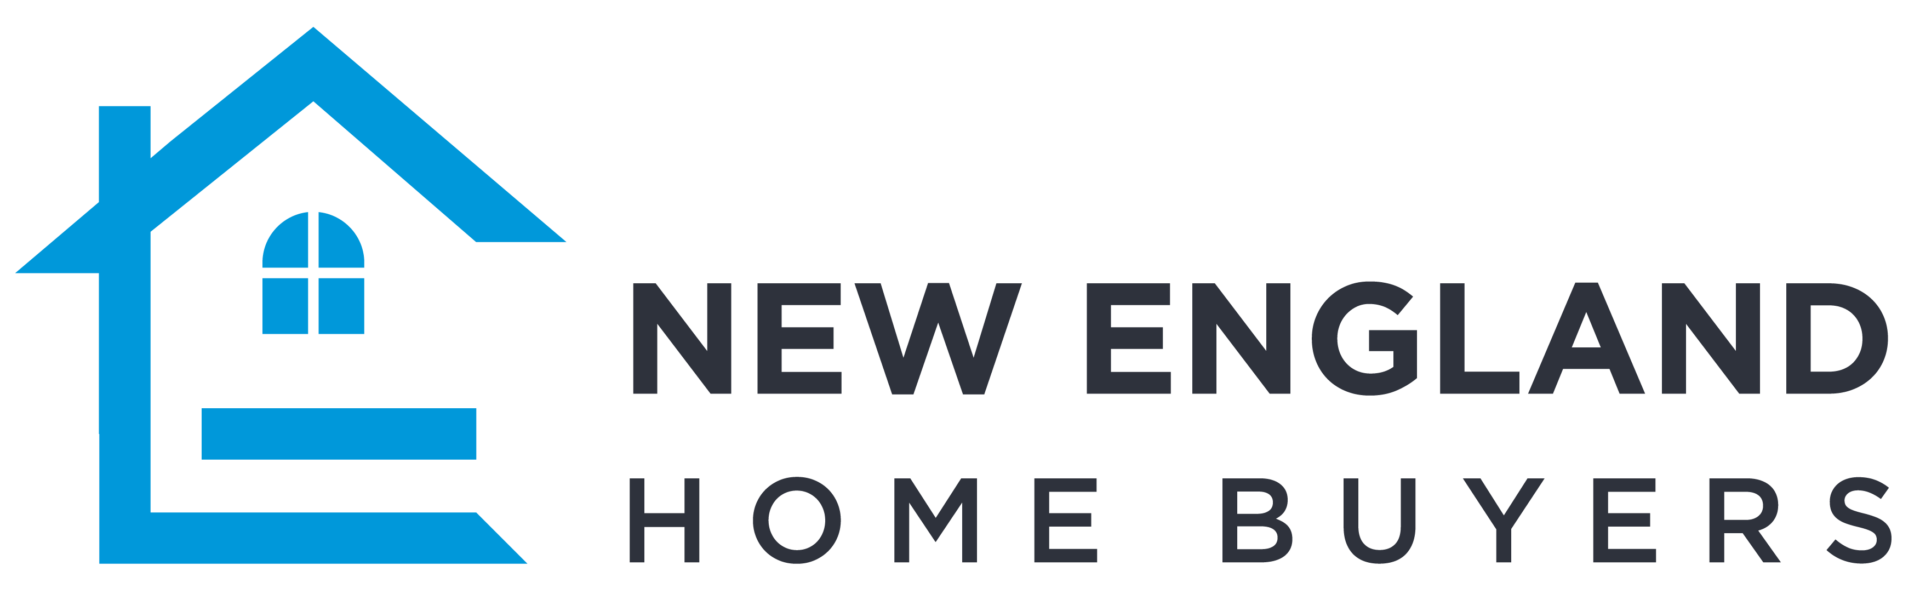 New England Home Buyers logo